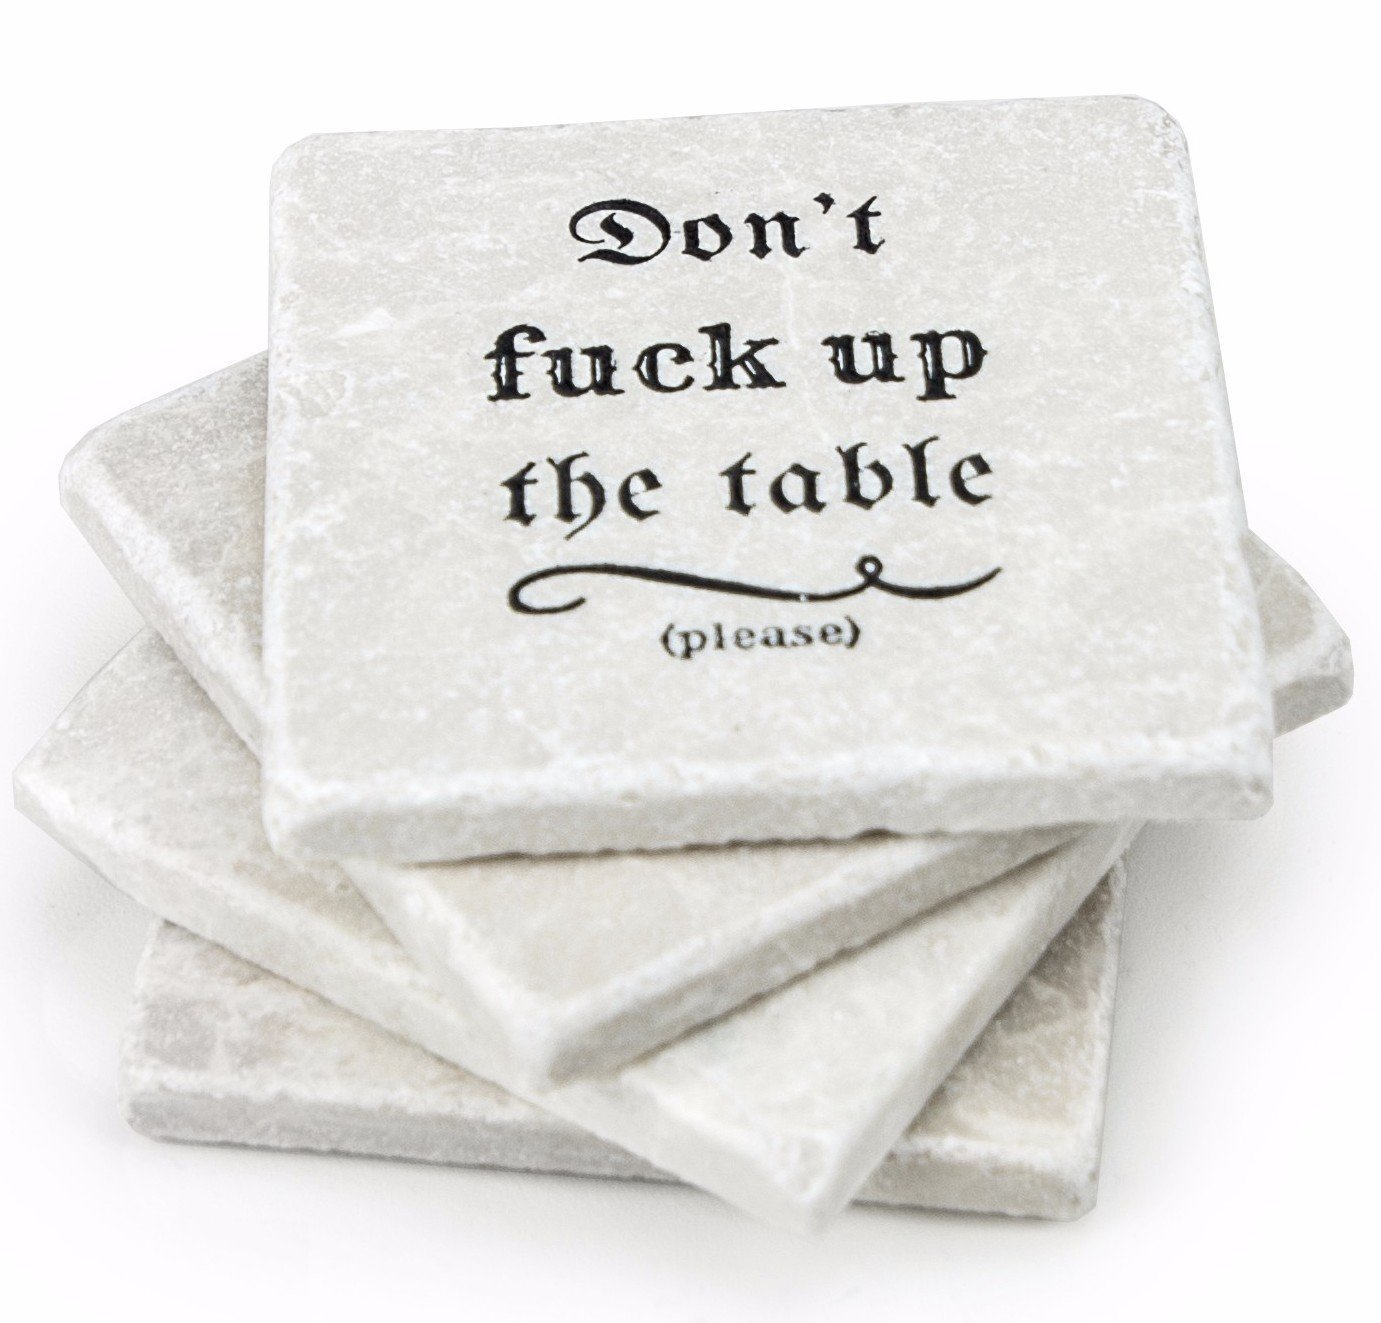 Don't Fuck up the Table - 4 Stone Coasters for Drinks - Housewarming Gift Marble Coasters, Kitchen, Living Room, Table Decor